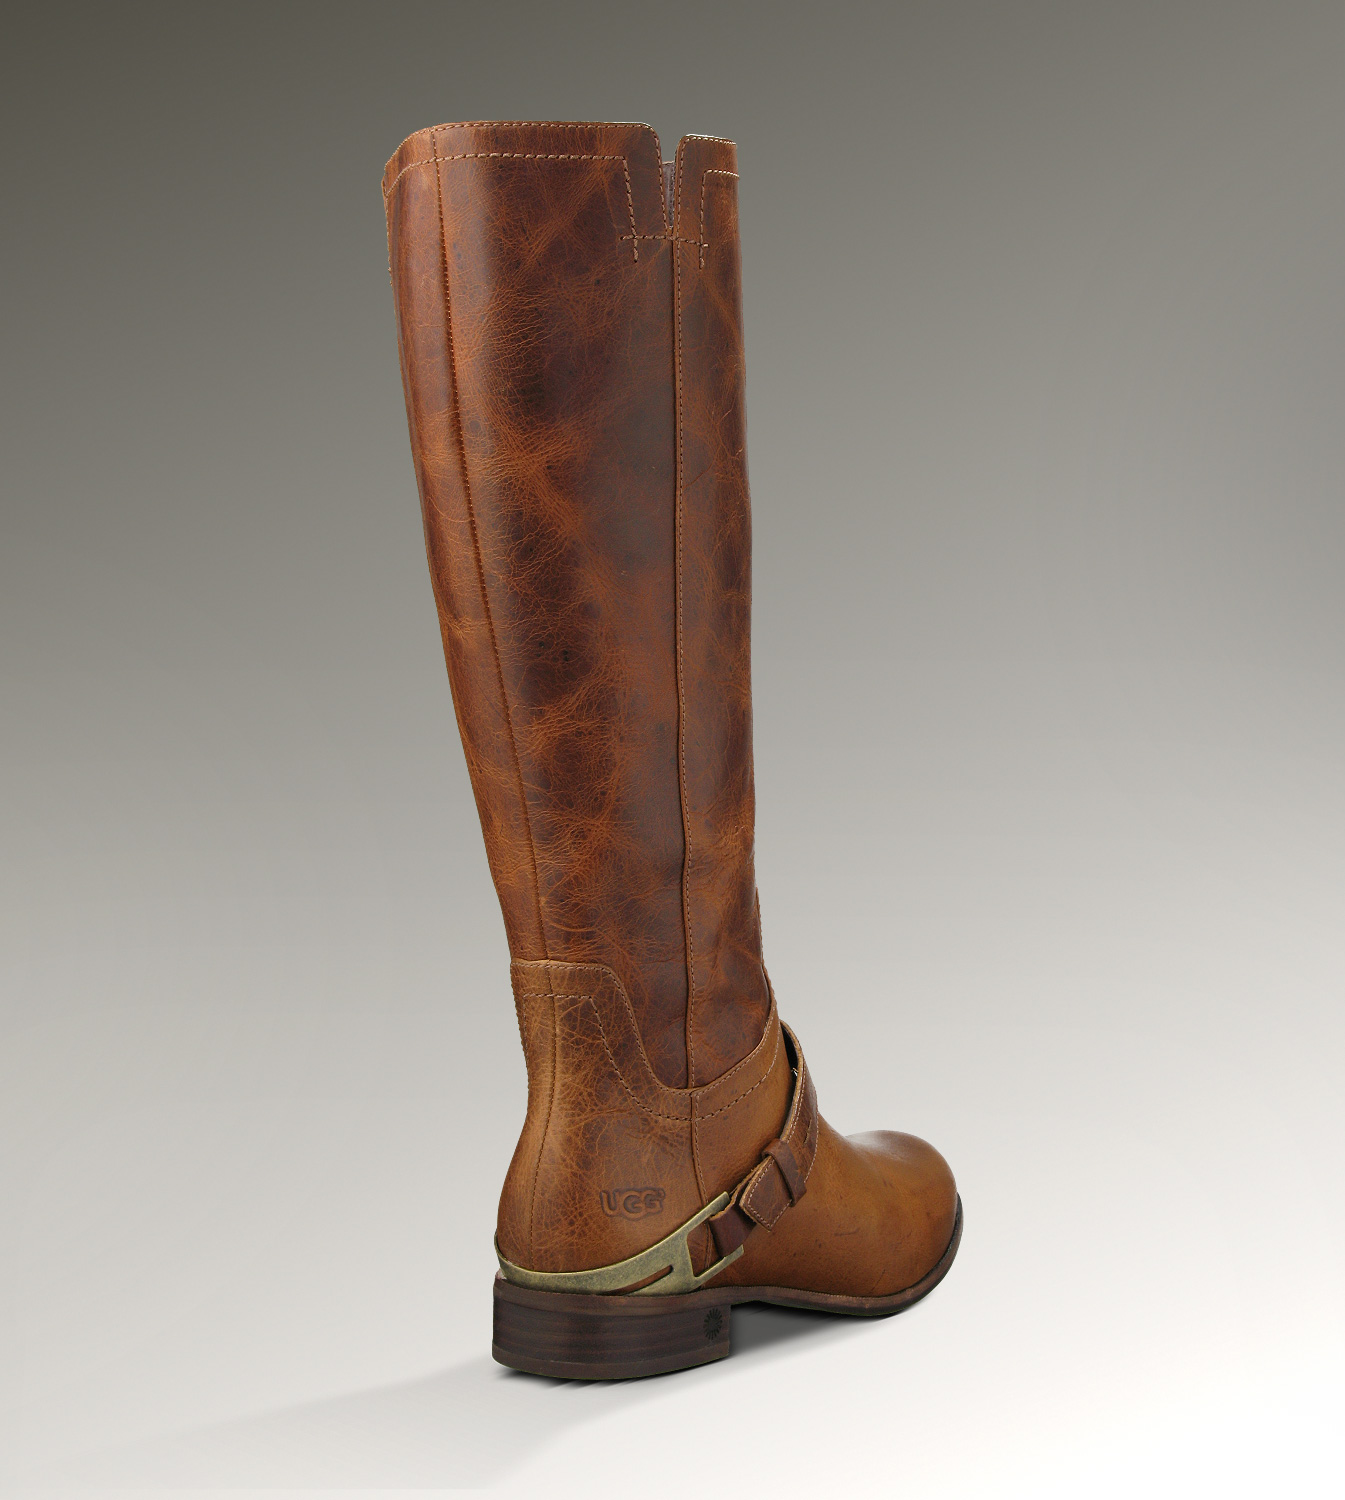 UGG Channing II 1001637 Chestnut Boots